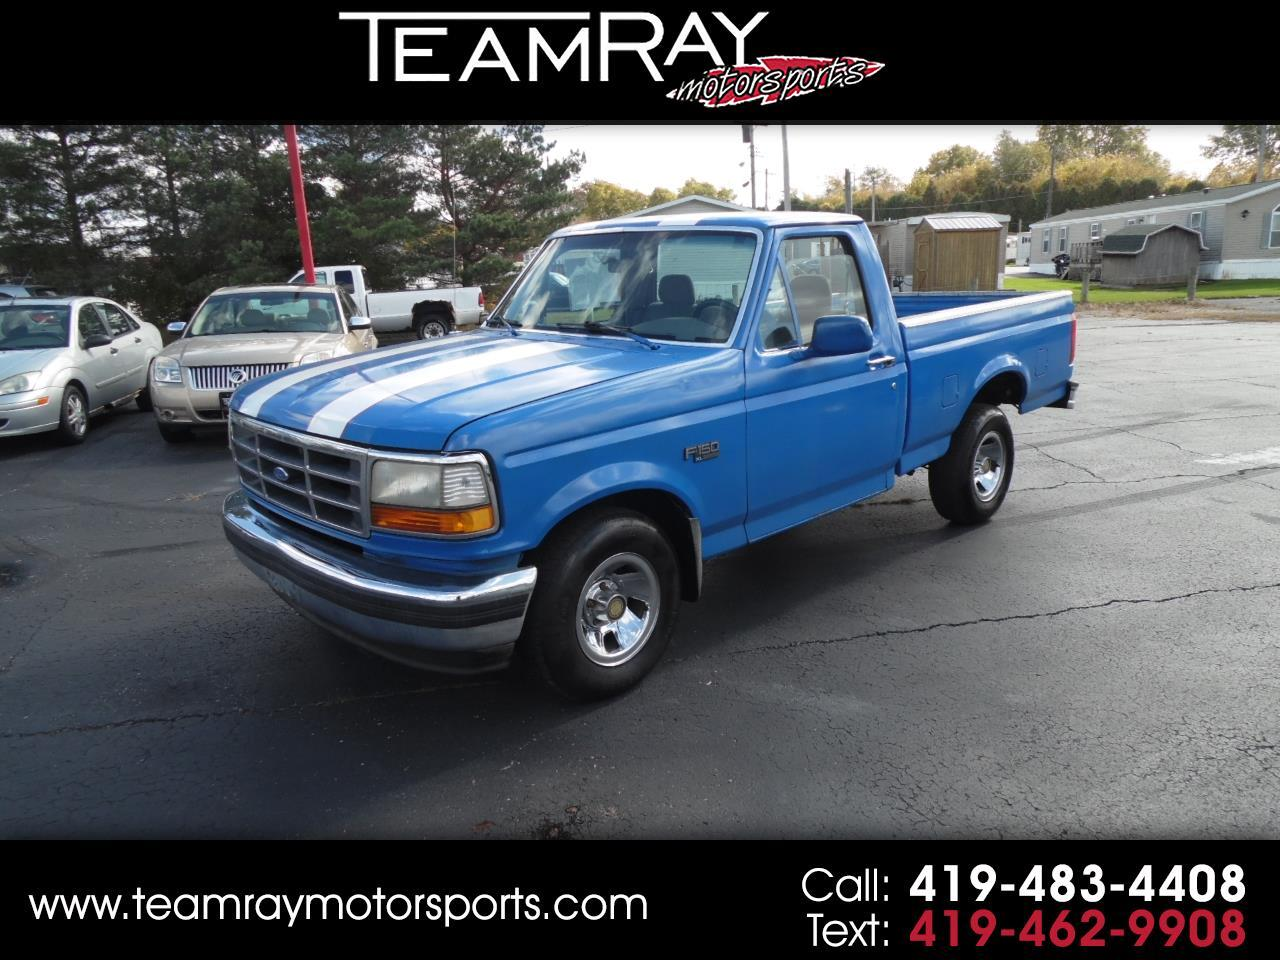 1994 Ford F-150 117